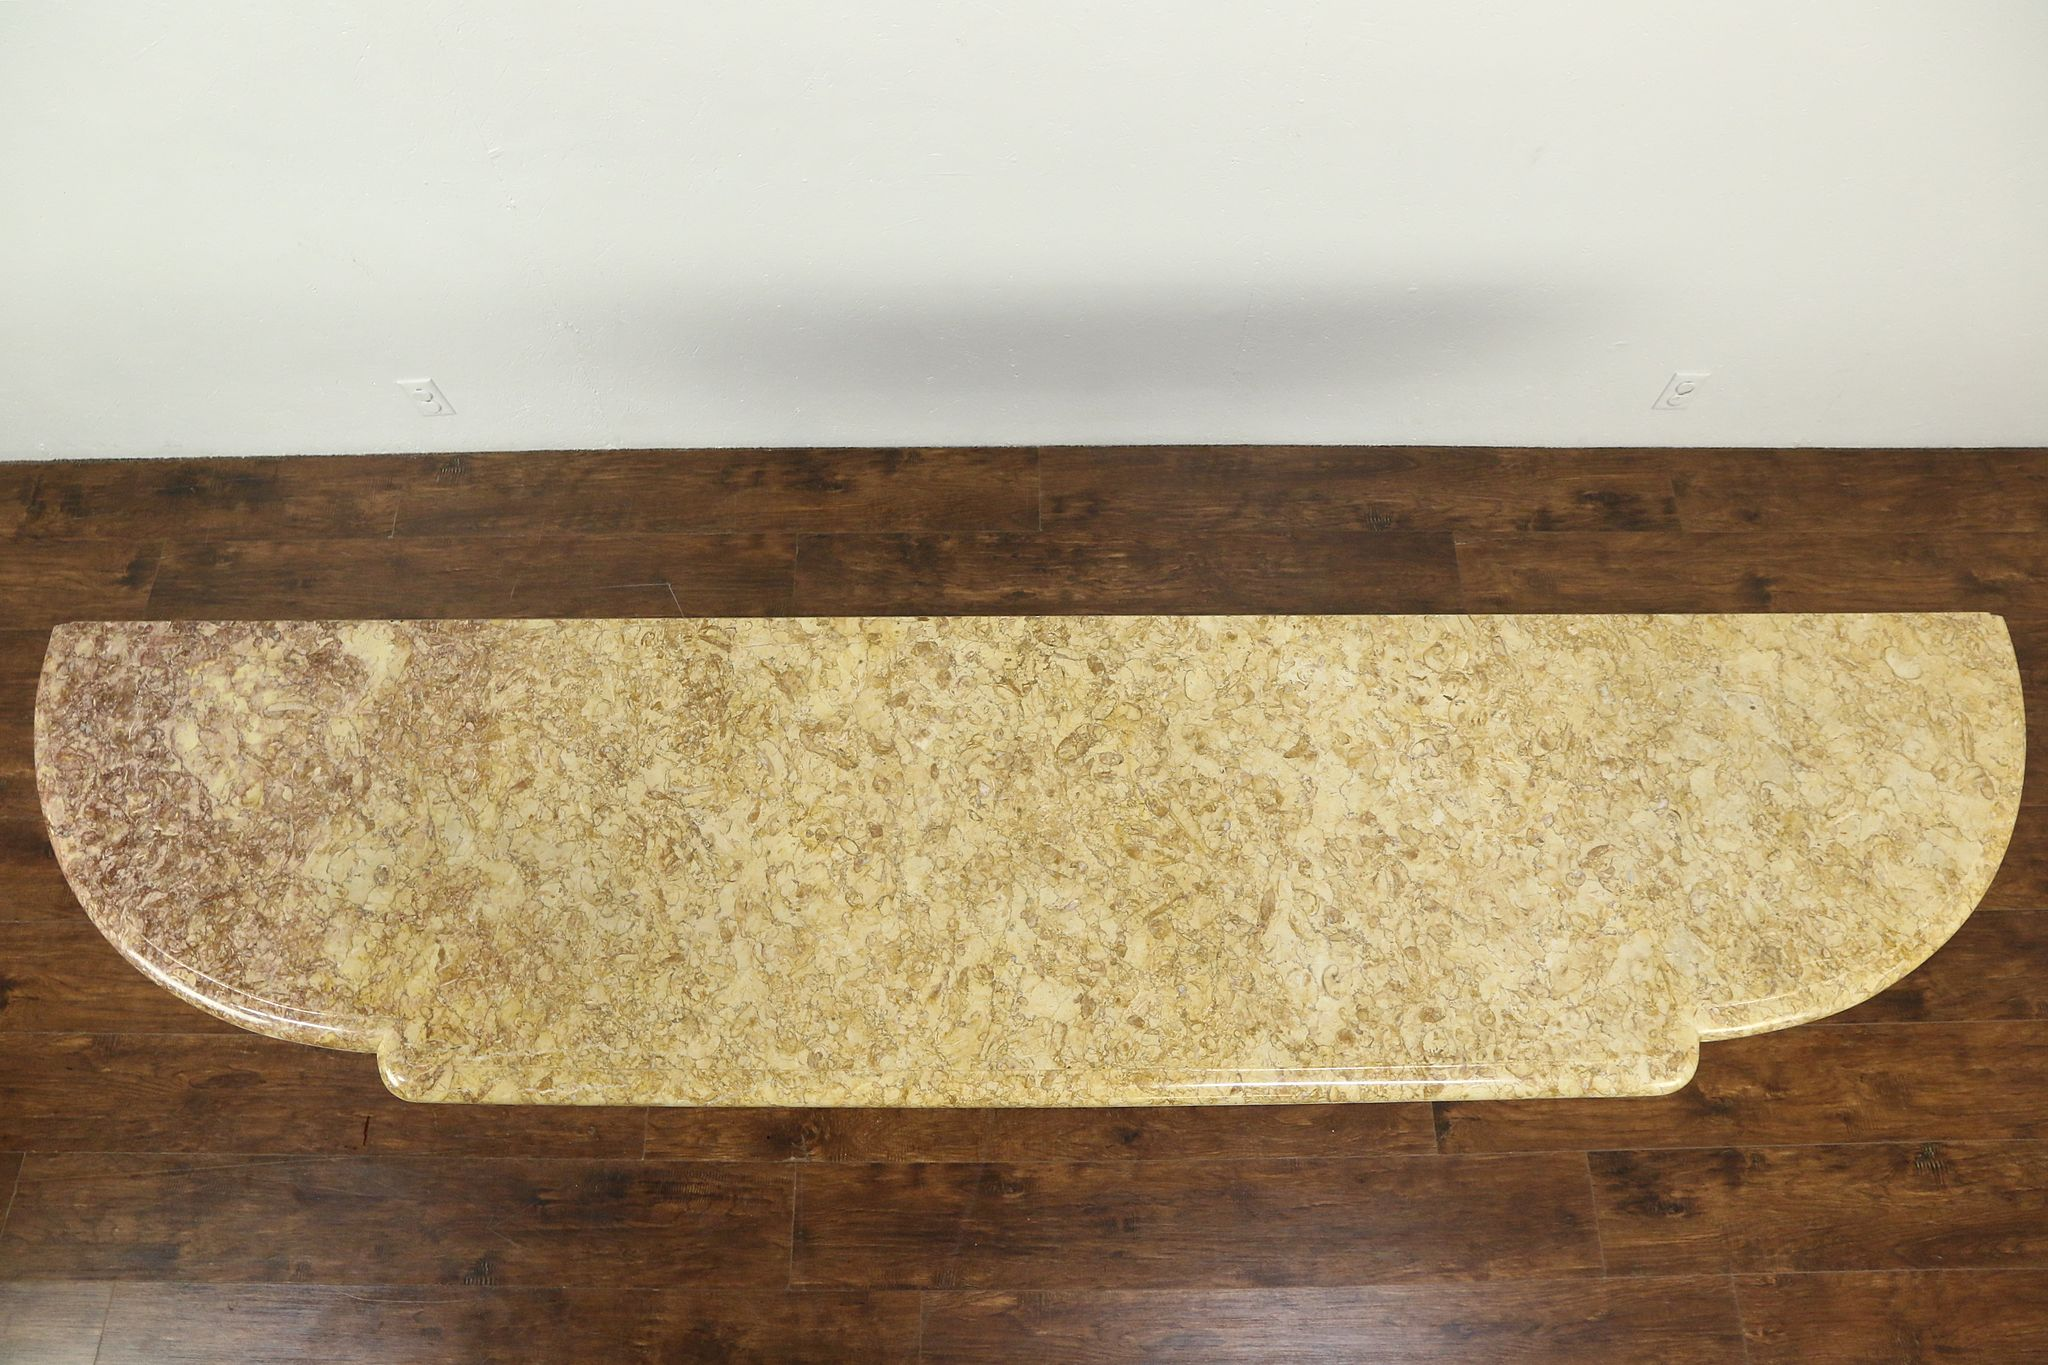 Shaped 8 7 Marble Counter Or Slab Architectural Salvage Photo